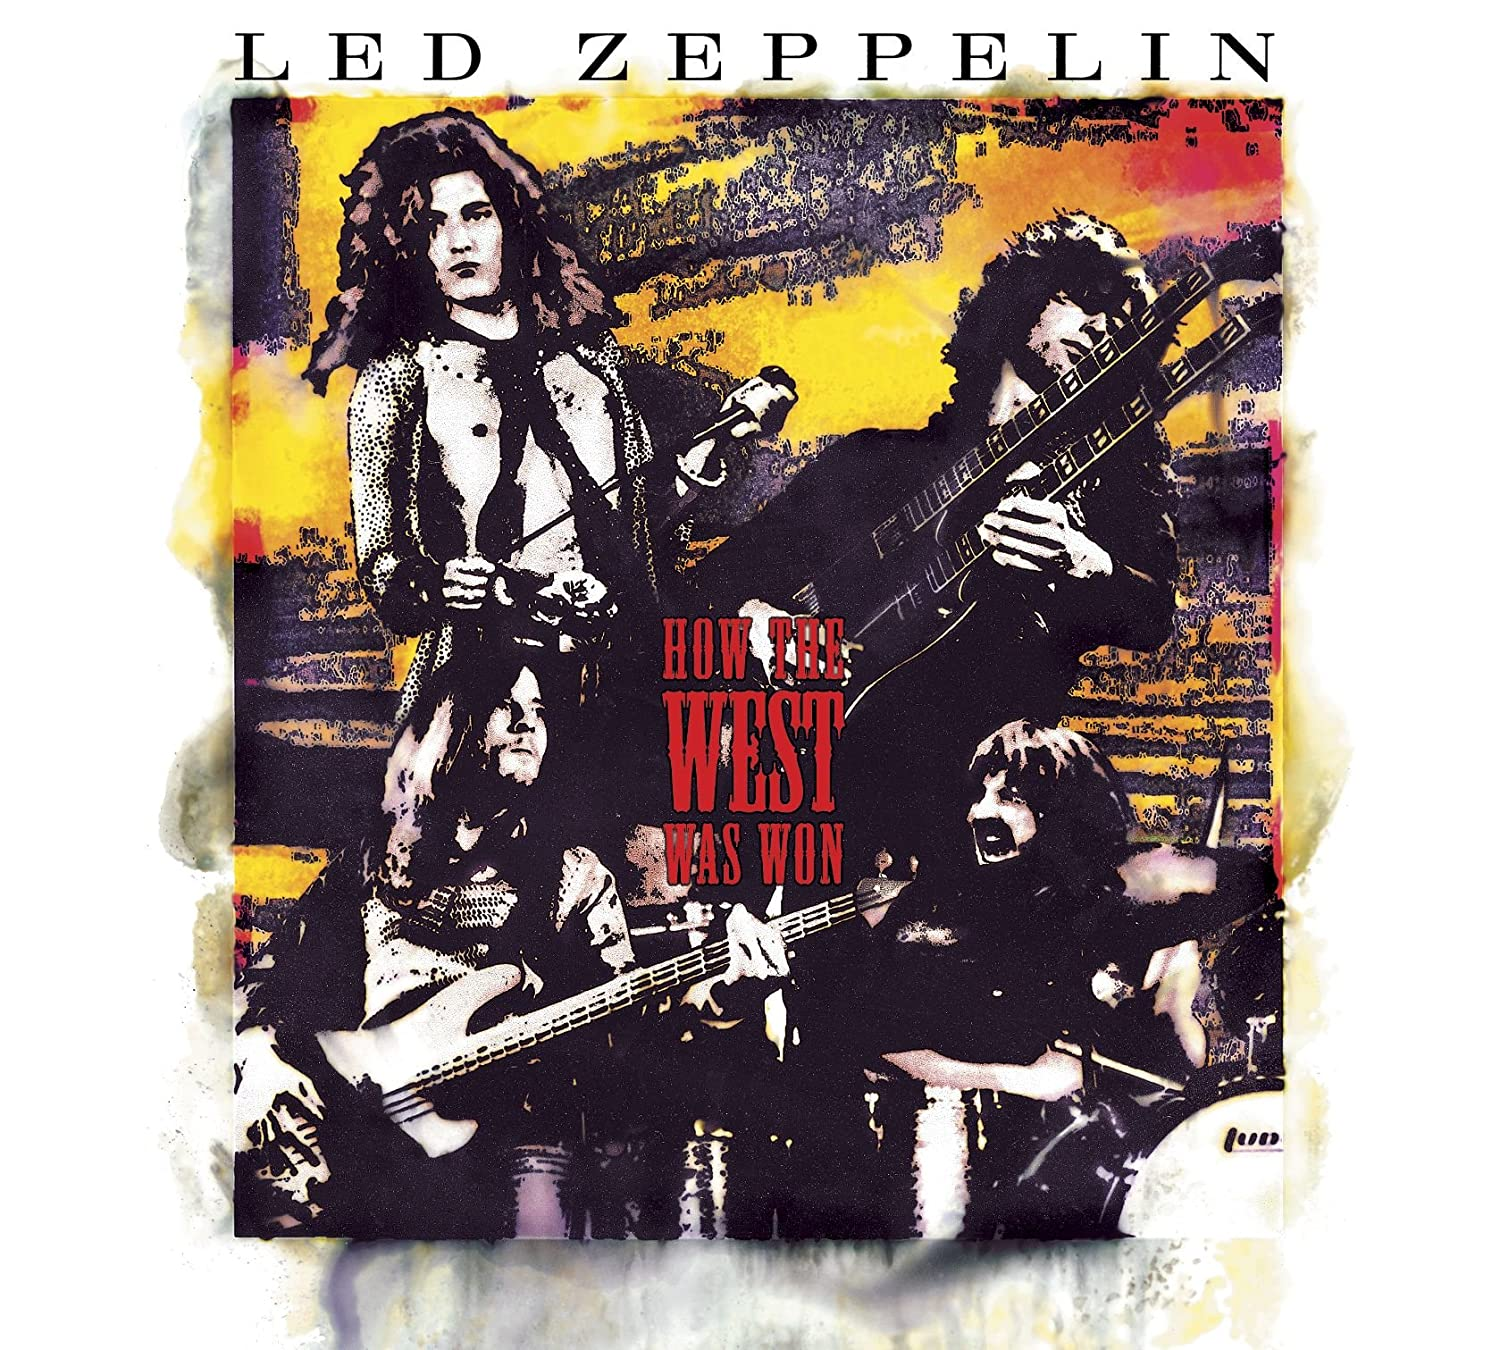 Art for Since I've Been Loving You (Los Angeles, June 1972) by Led Zeppelin